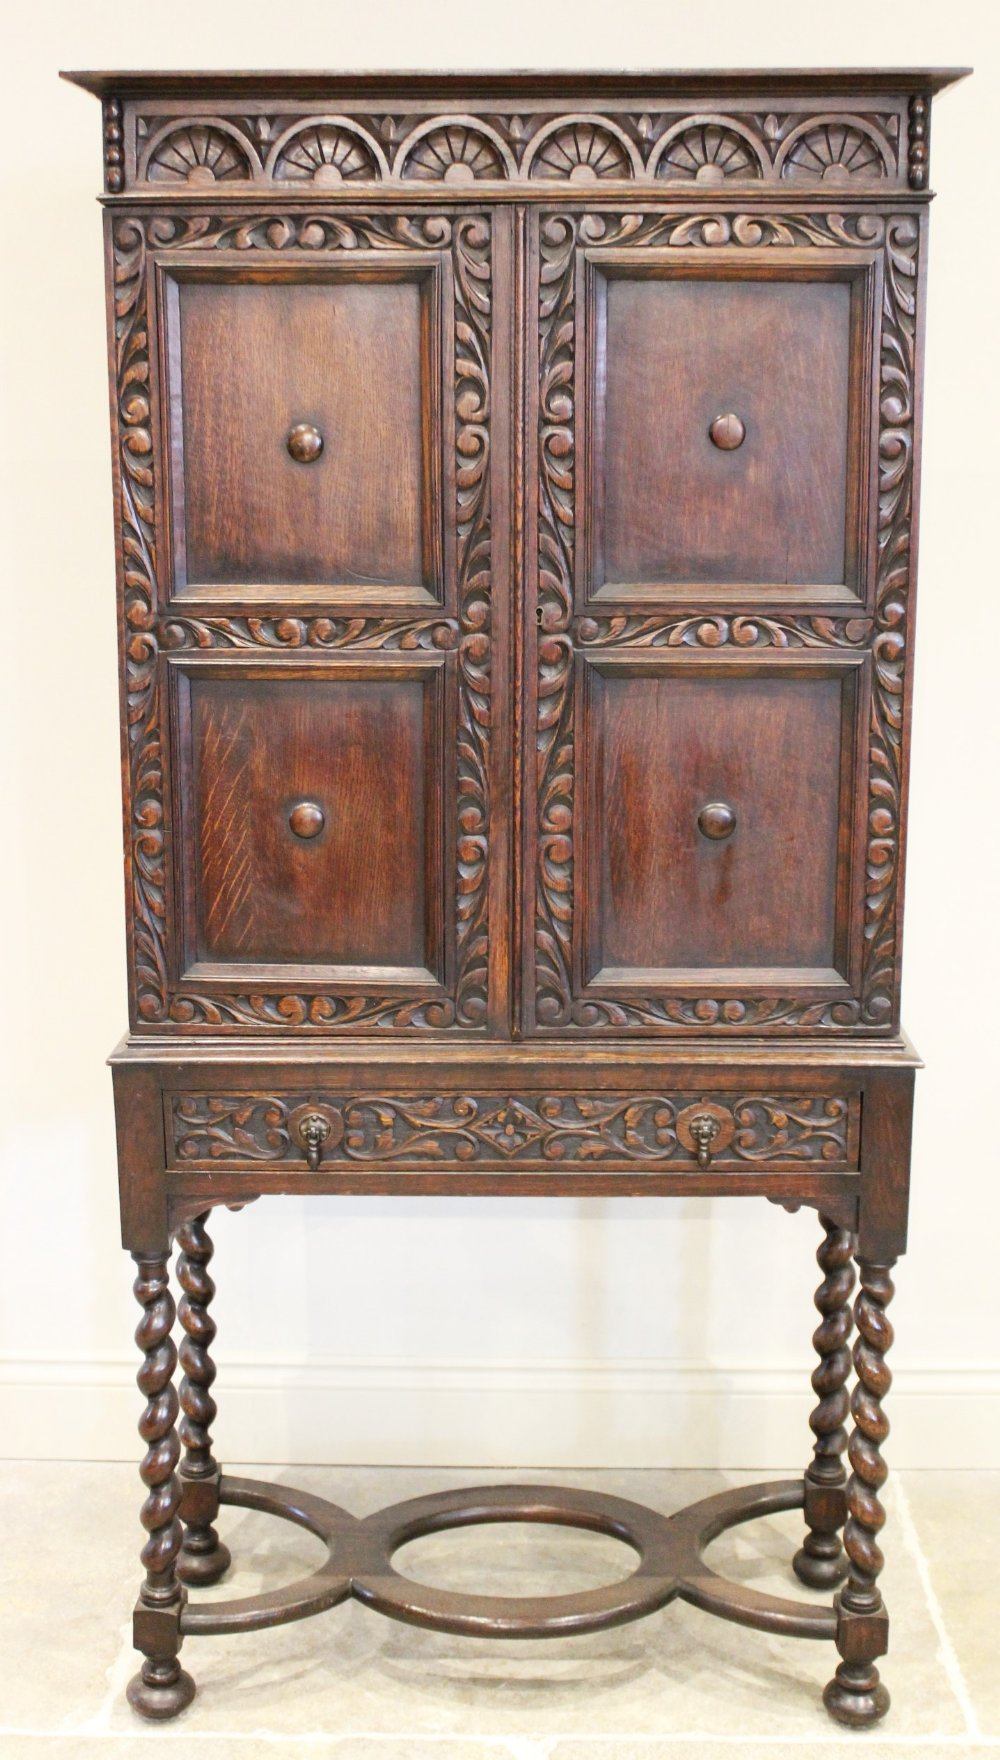 A 17th century style oak cabinet on stand, circa 1930, the lunette carved frieze above twin panelled